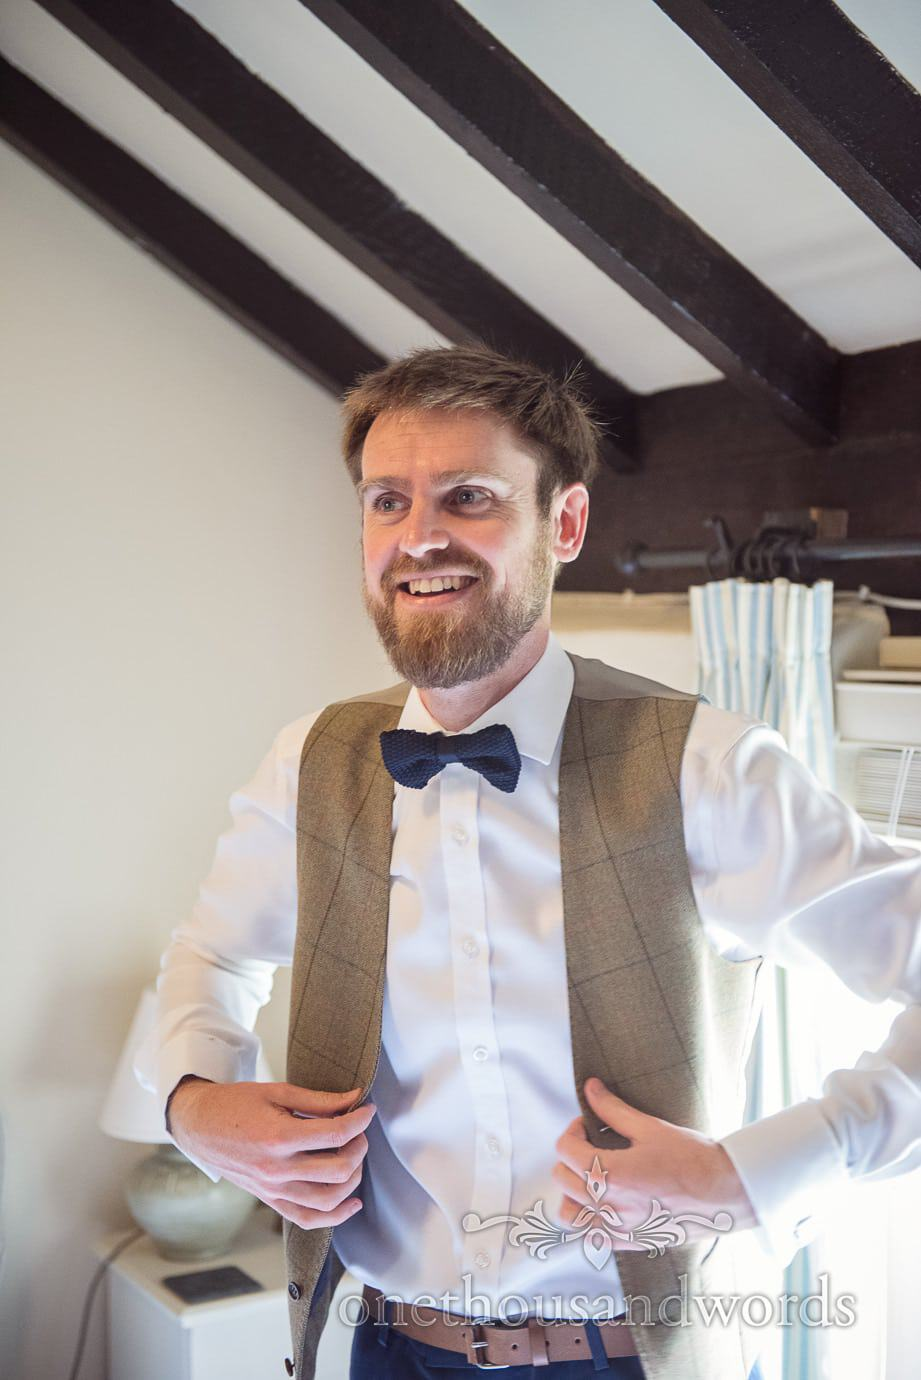 Groom prepares for rustic wedding day with blue bow tie and brown tweed waistcoat